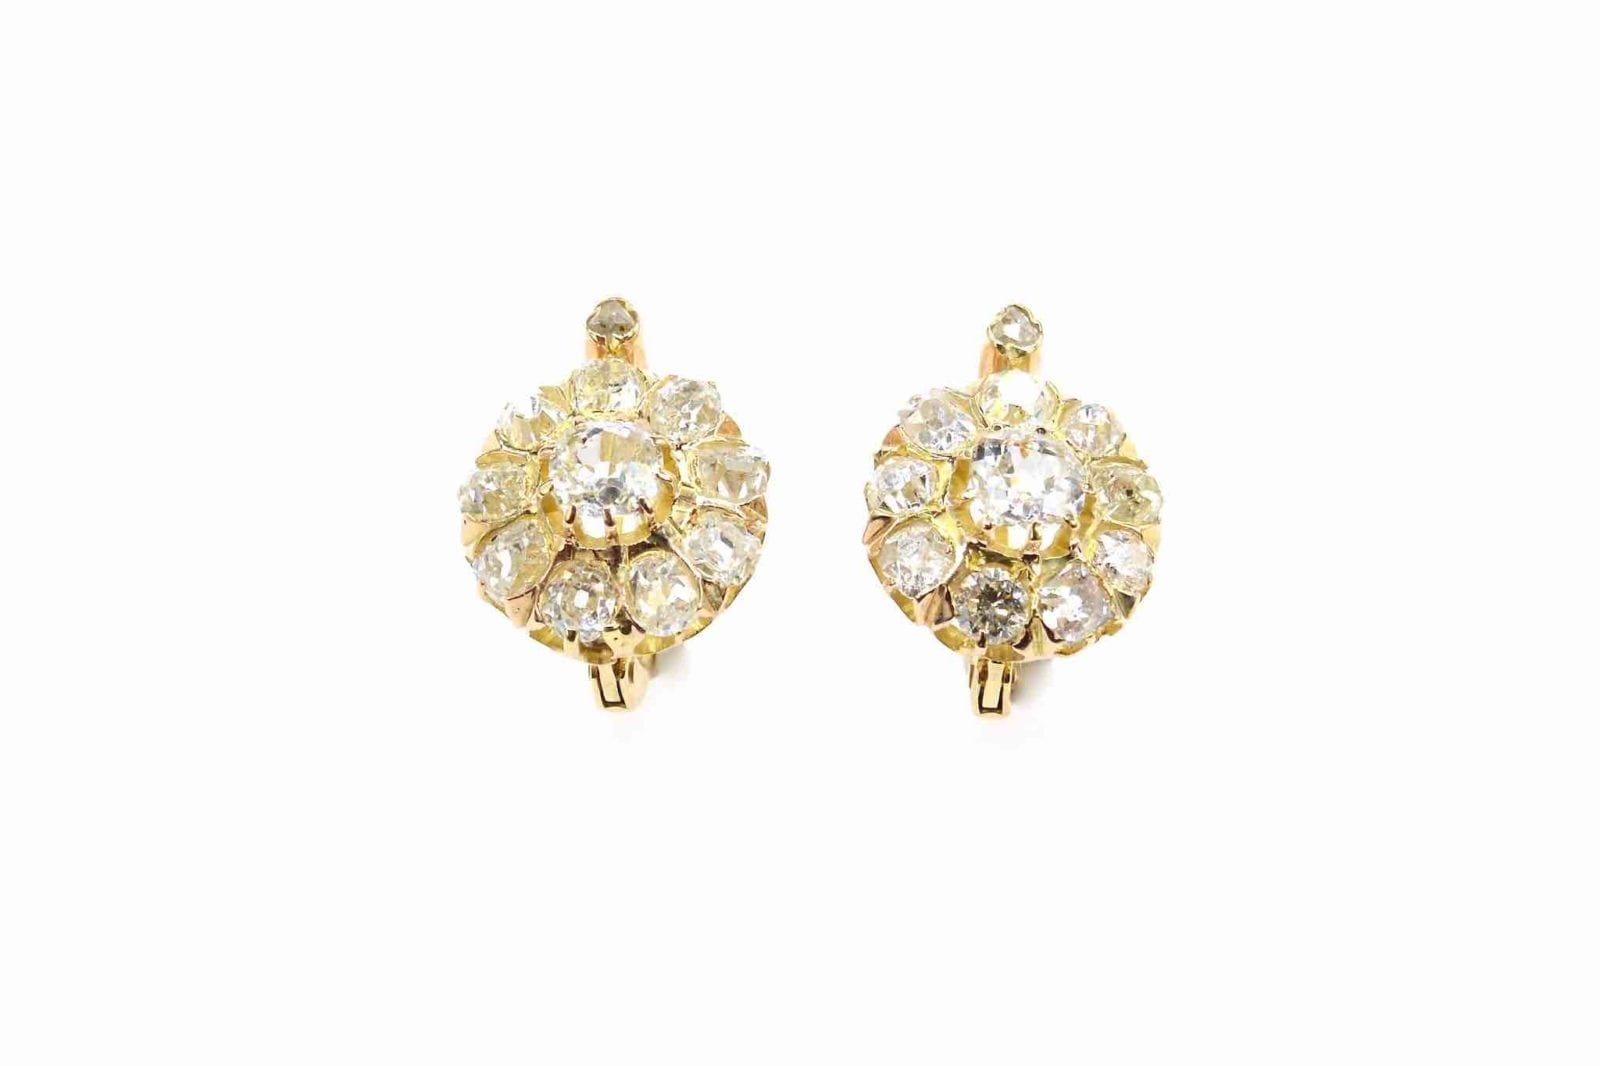 Boucles d'oreilles diamants en or jaune 18k